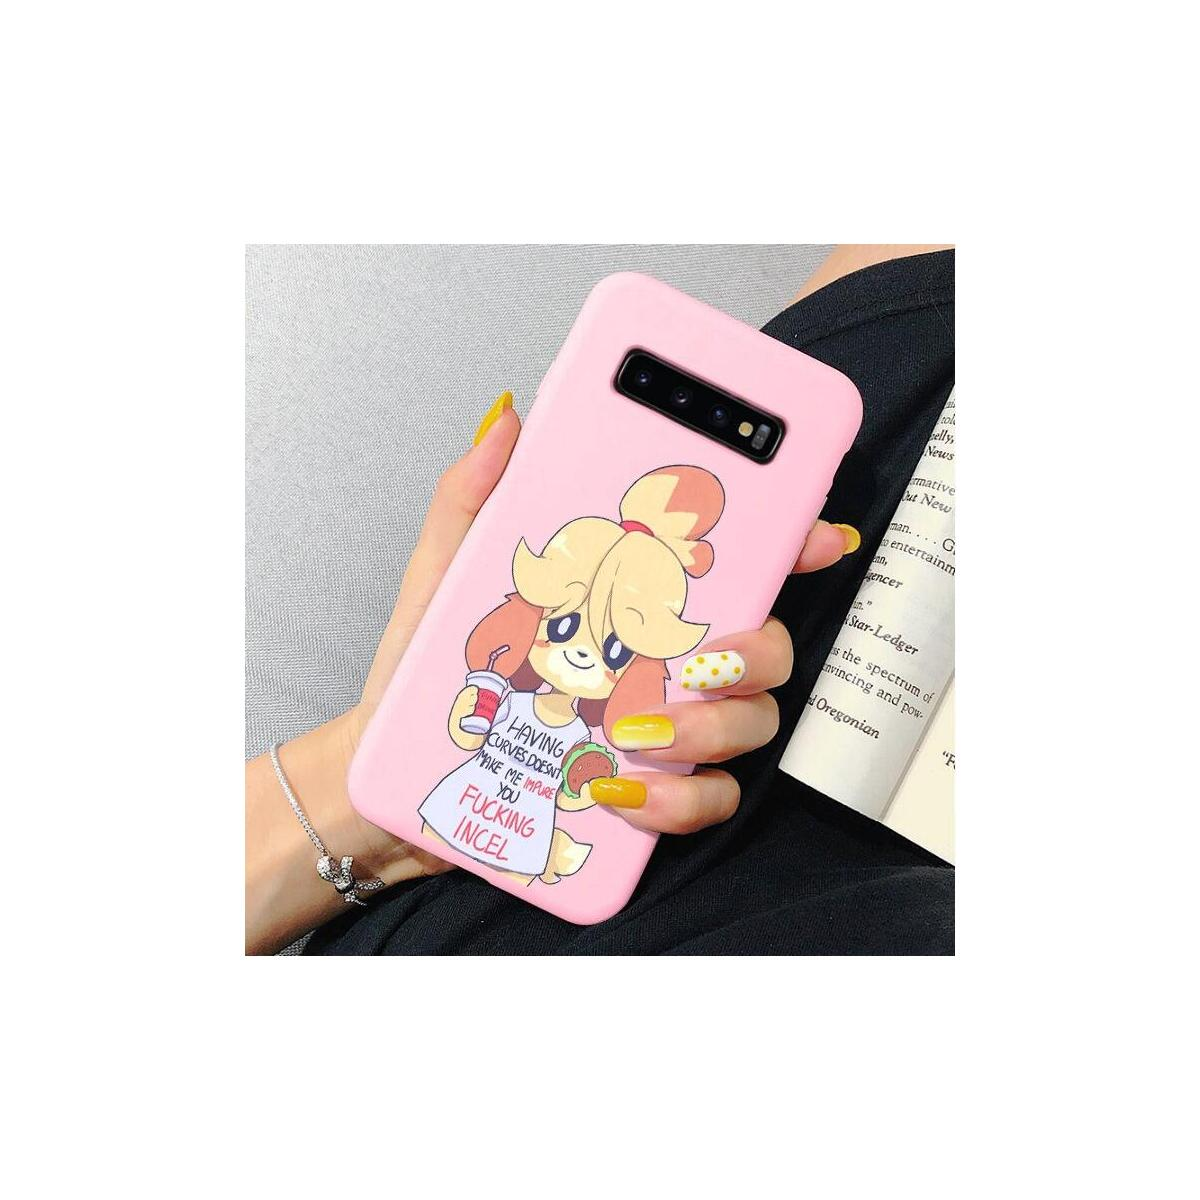 Animal Crossing New Horizons phone case for Samsung Galaxy, s9 plus / HHSR-490